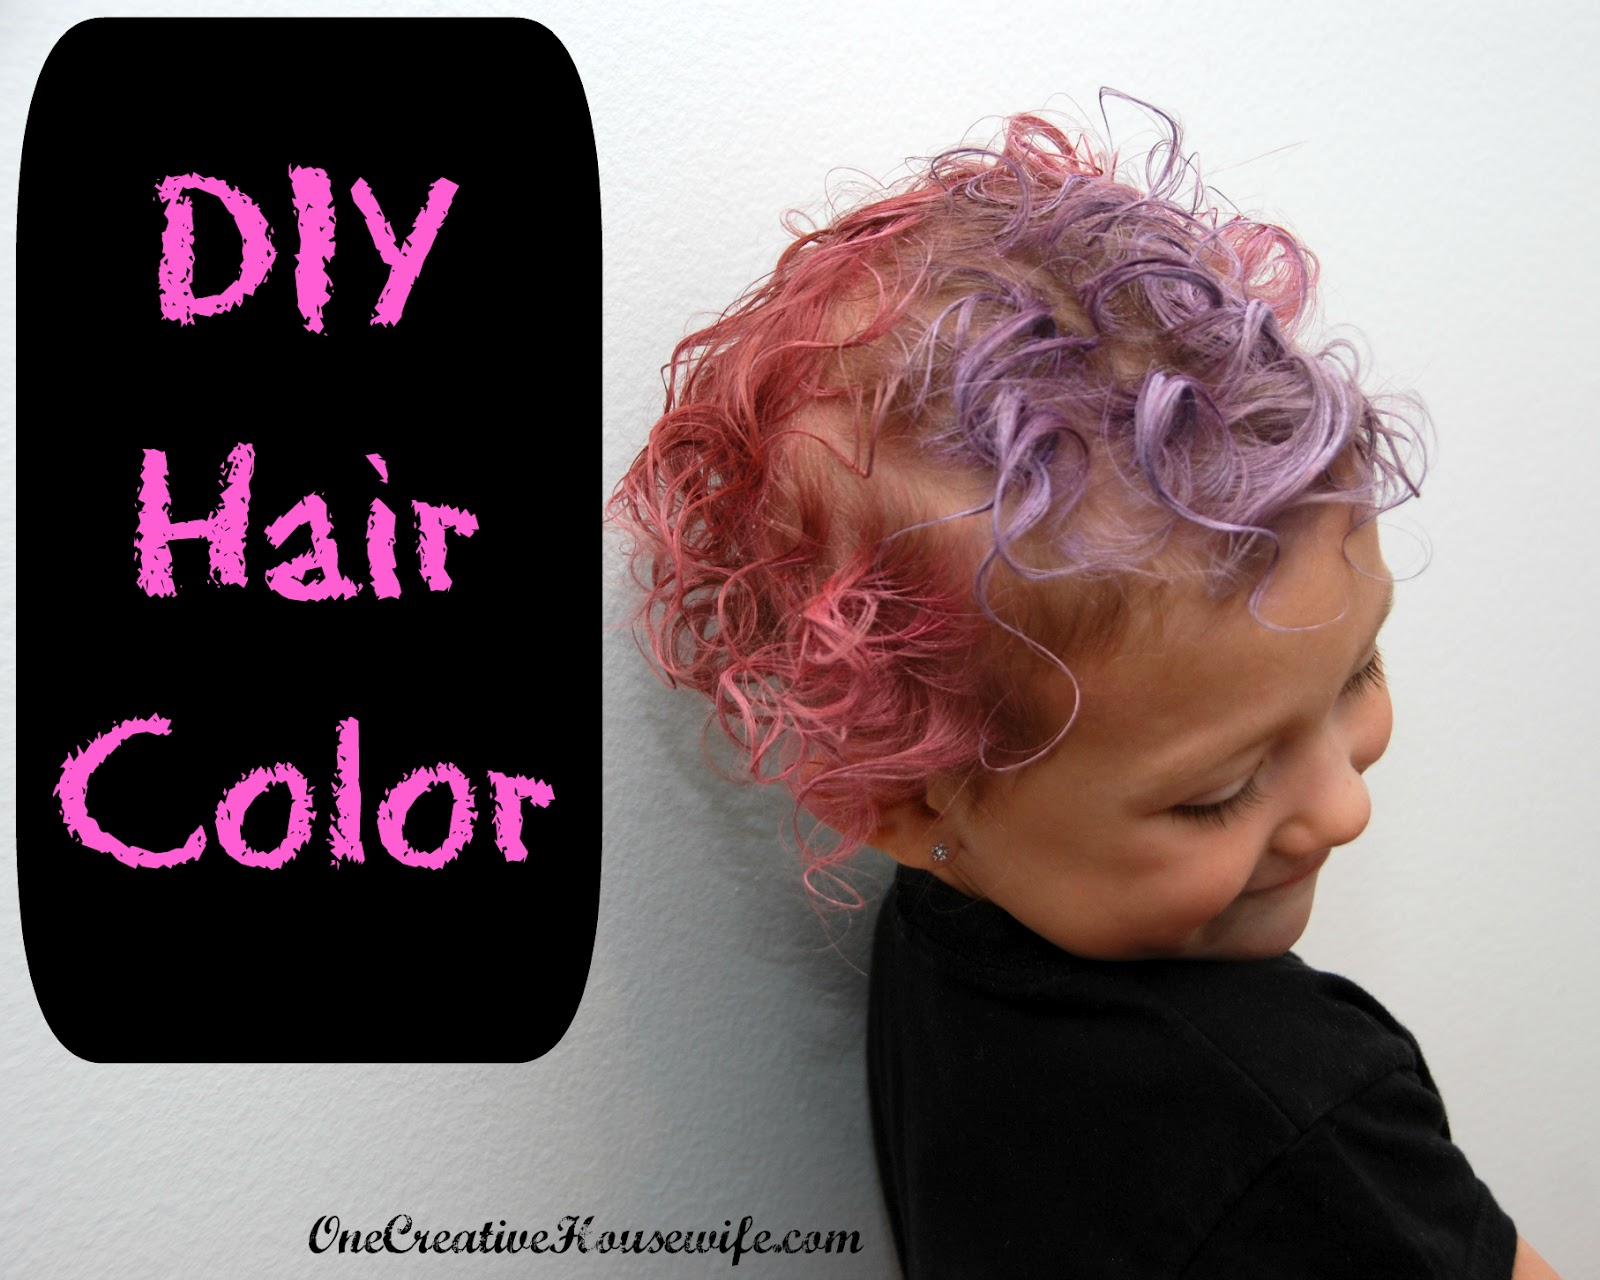 One creative housewife diy hair color diy hair color solutioingenieria Gallery